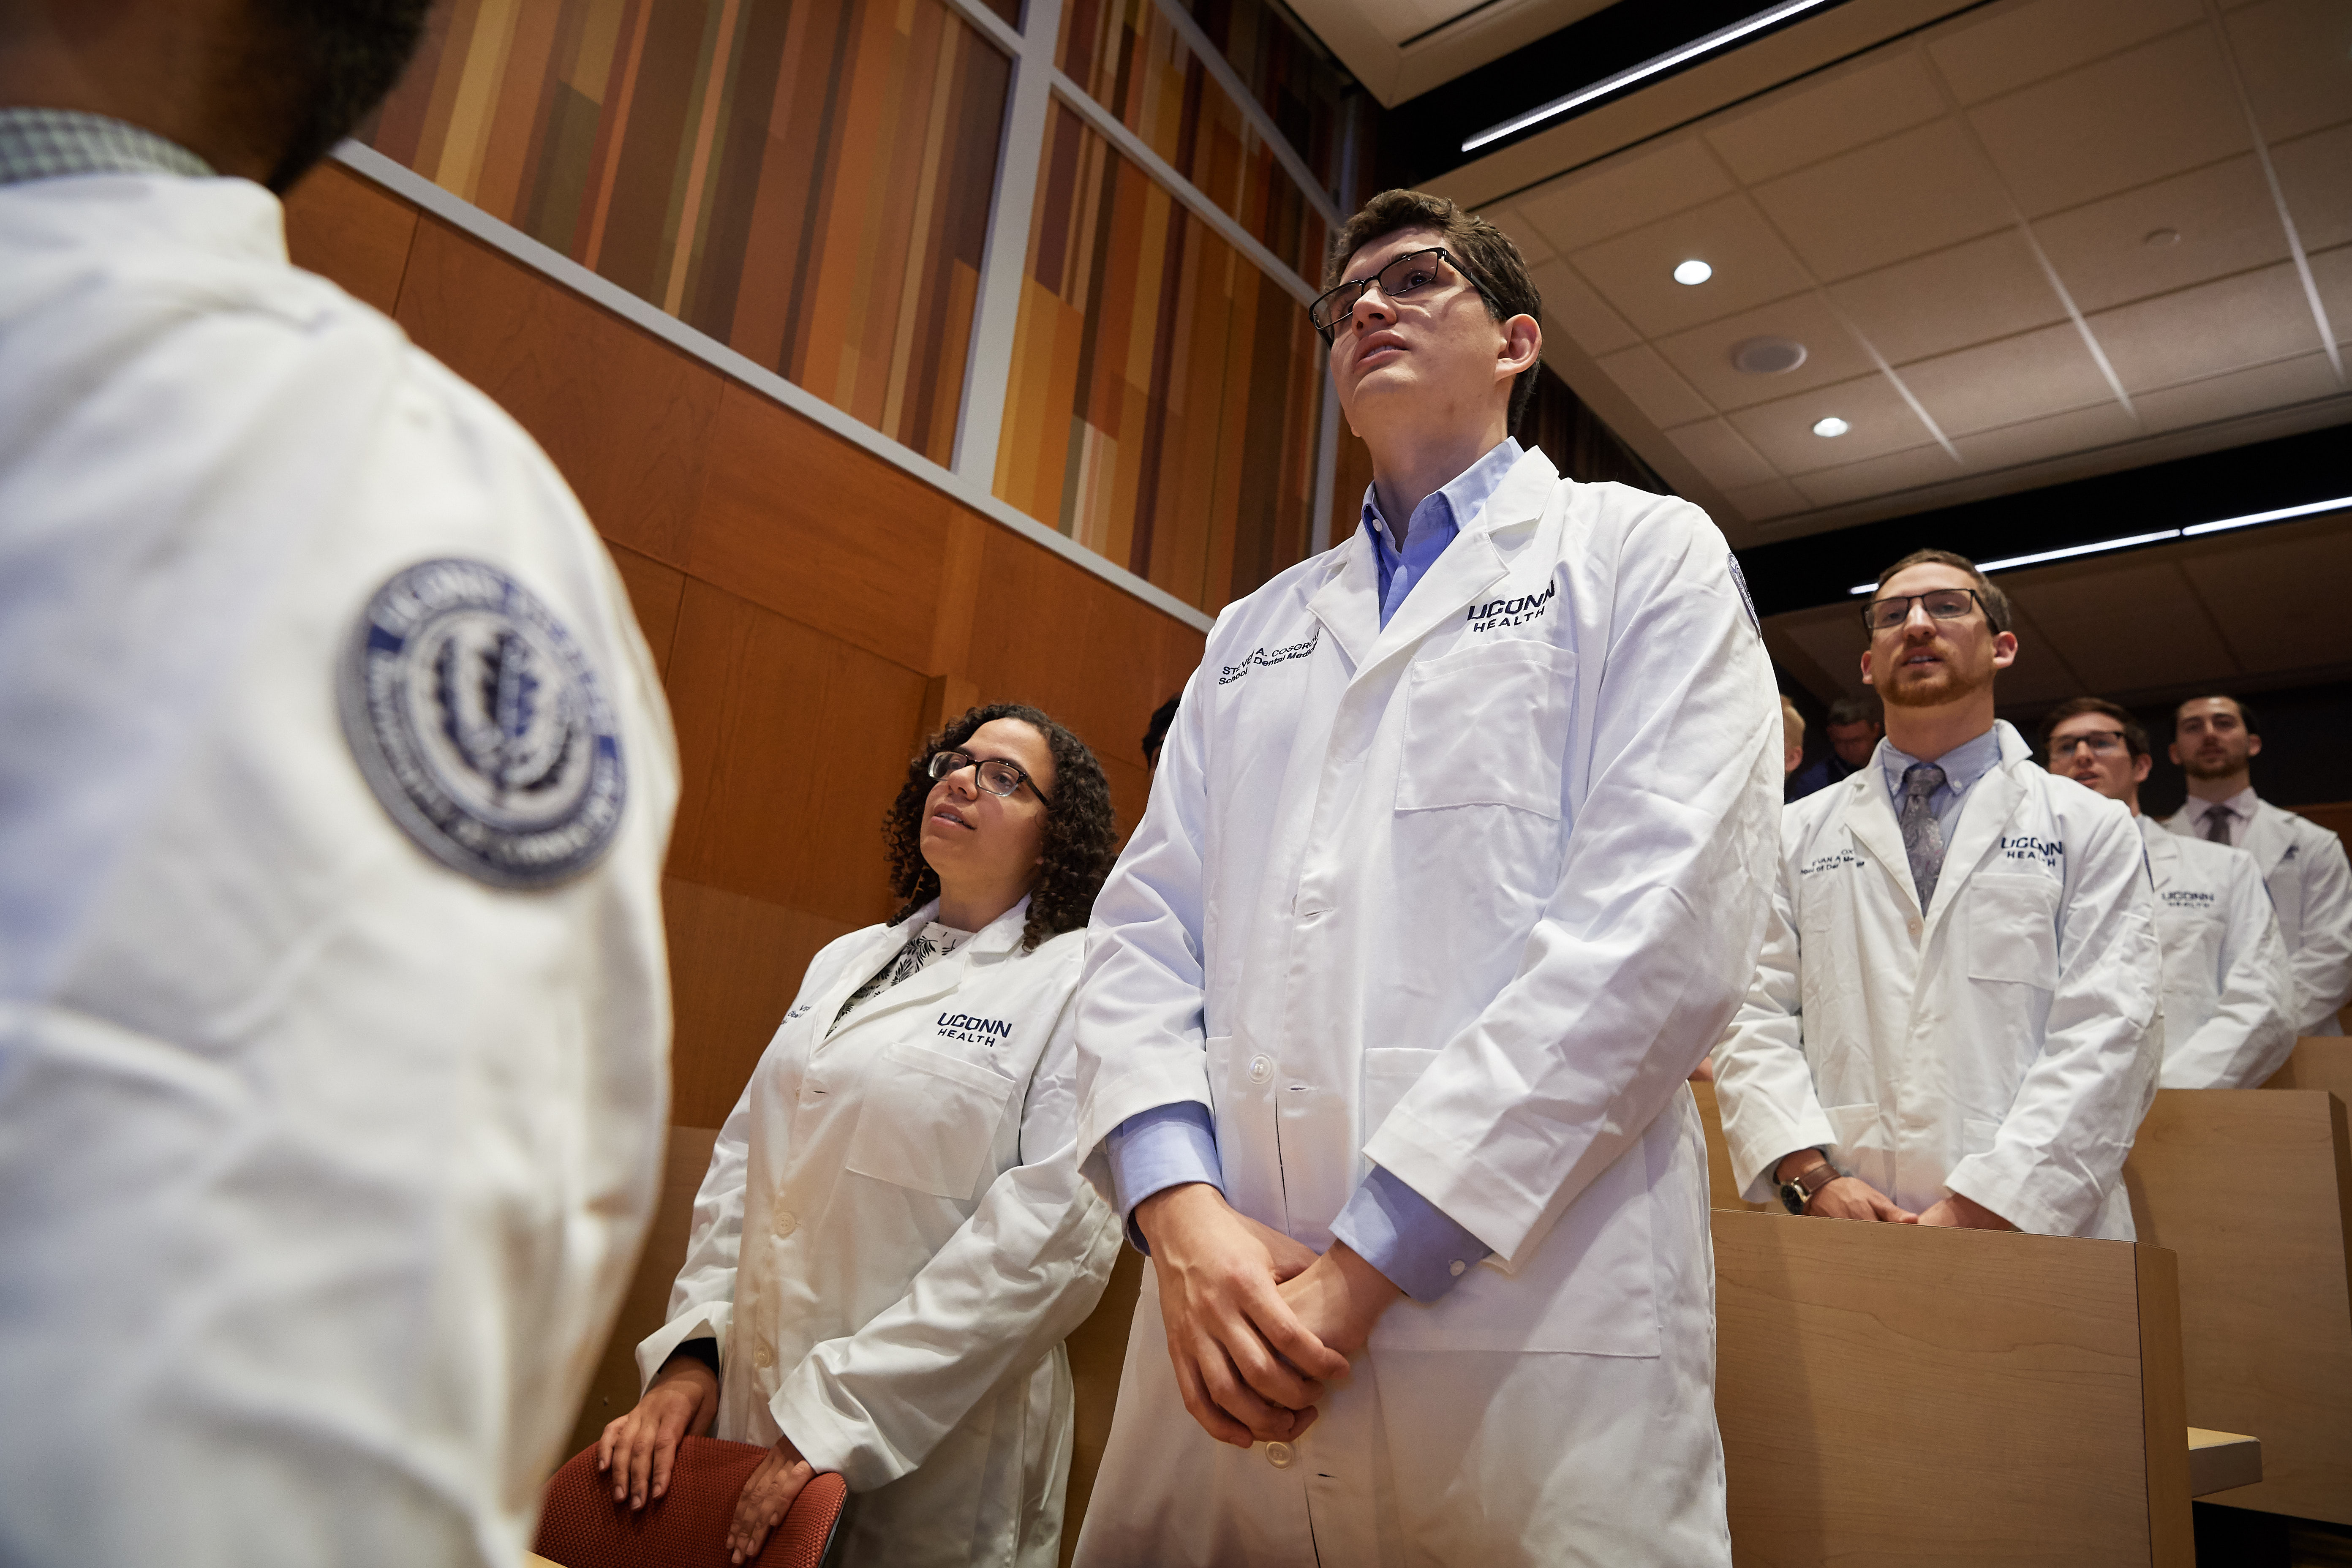 Second year dental students recite an American Dental Association pledge during a white coat ceremony on Friday marking their transition from theoretical to clinic-based learning. (Peter Morenus/UConn Photo)